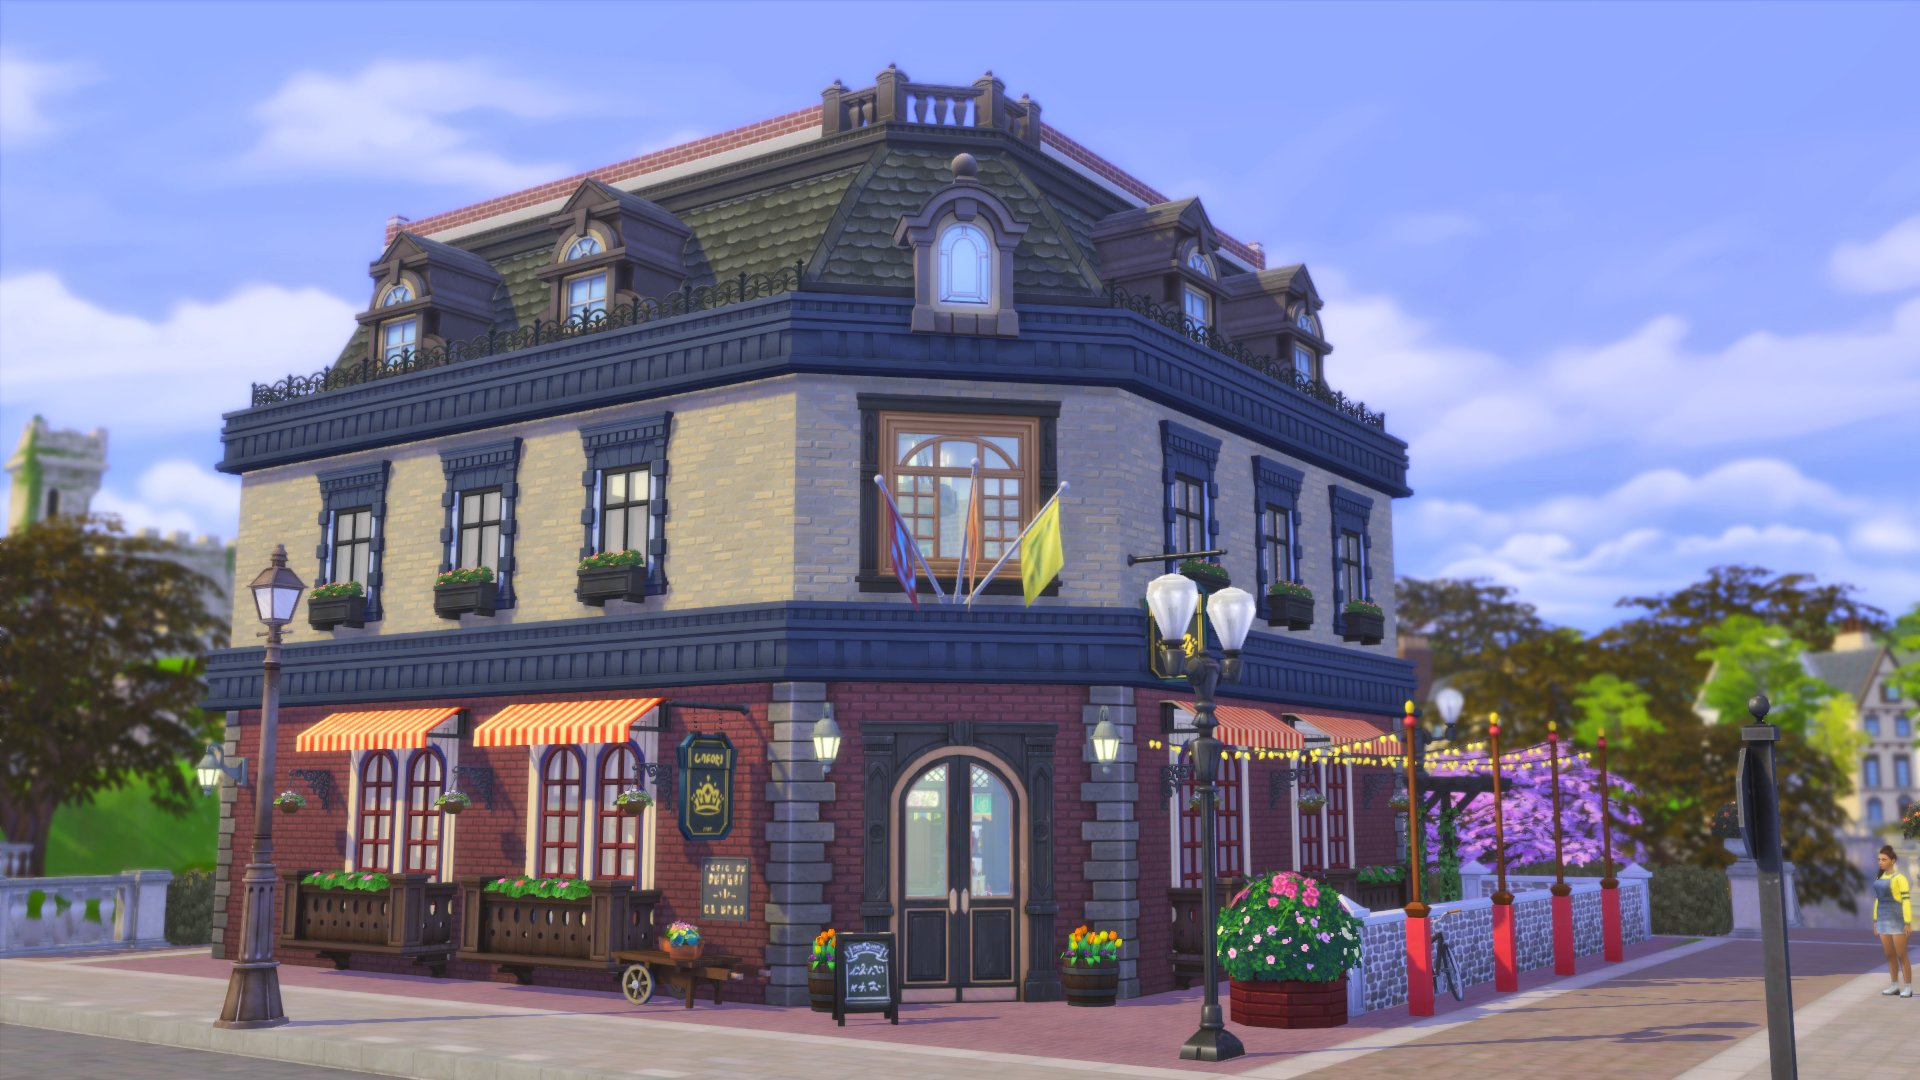 Finished my Britechester pub tonight, will playtest tomorrow before uploading.  Cheers! #ShowUsYourBuilds #TheSims4 https://t.co/Z7hoio5eCA